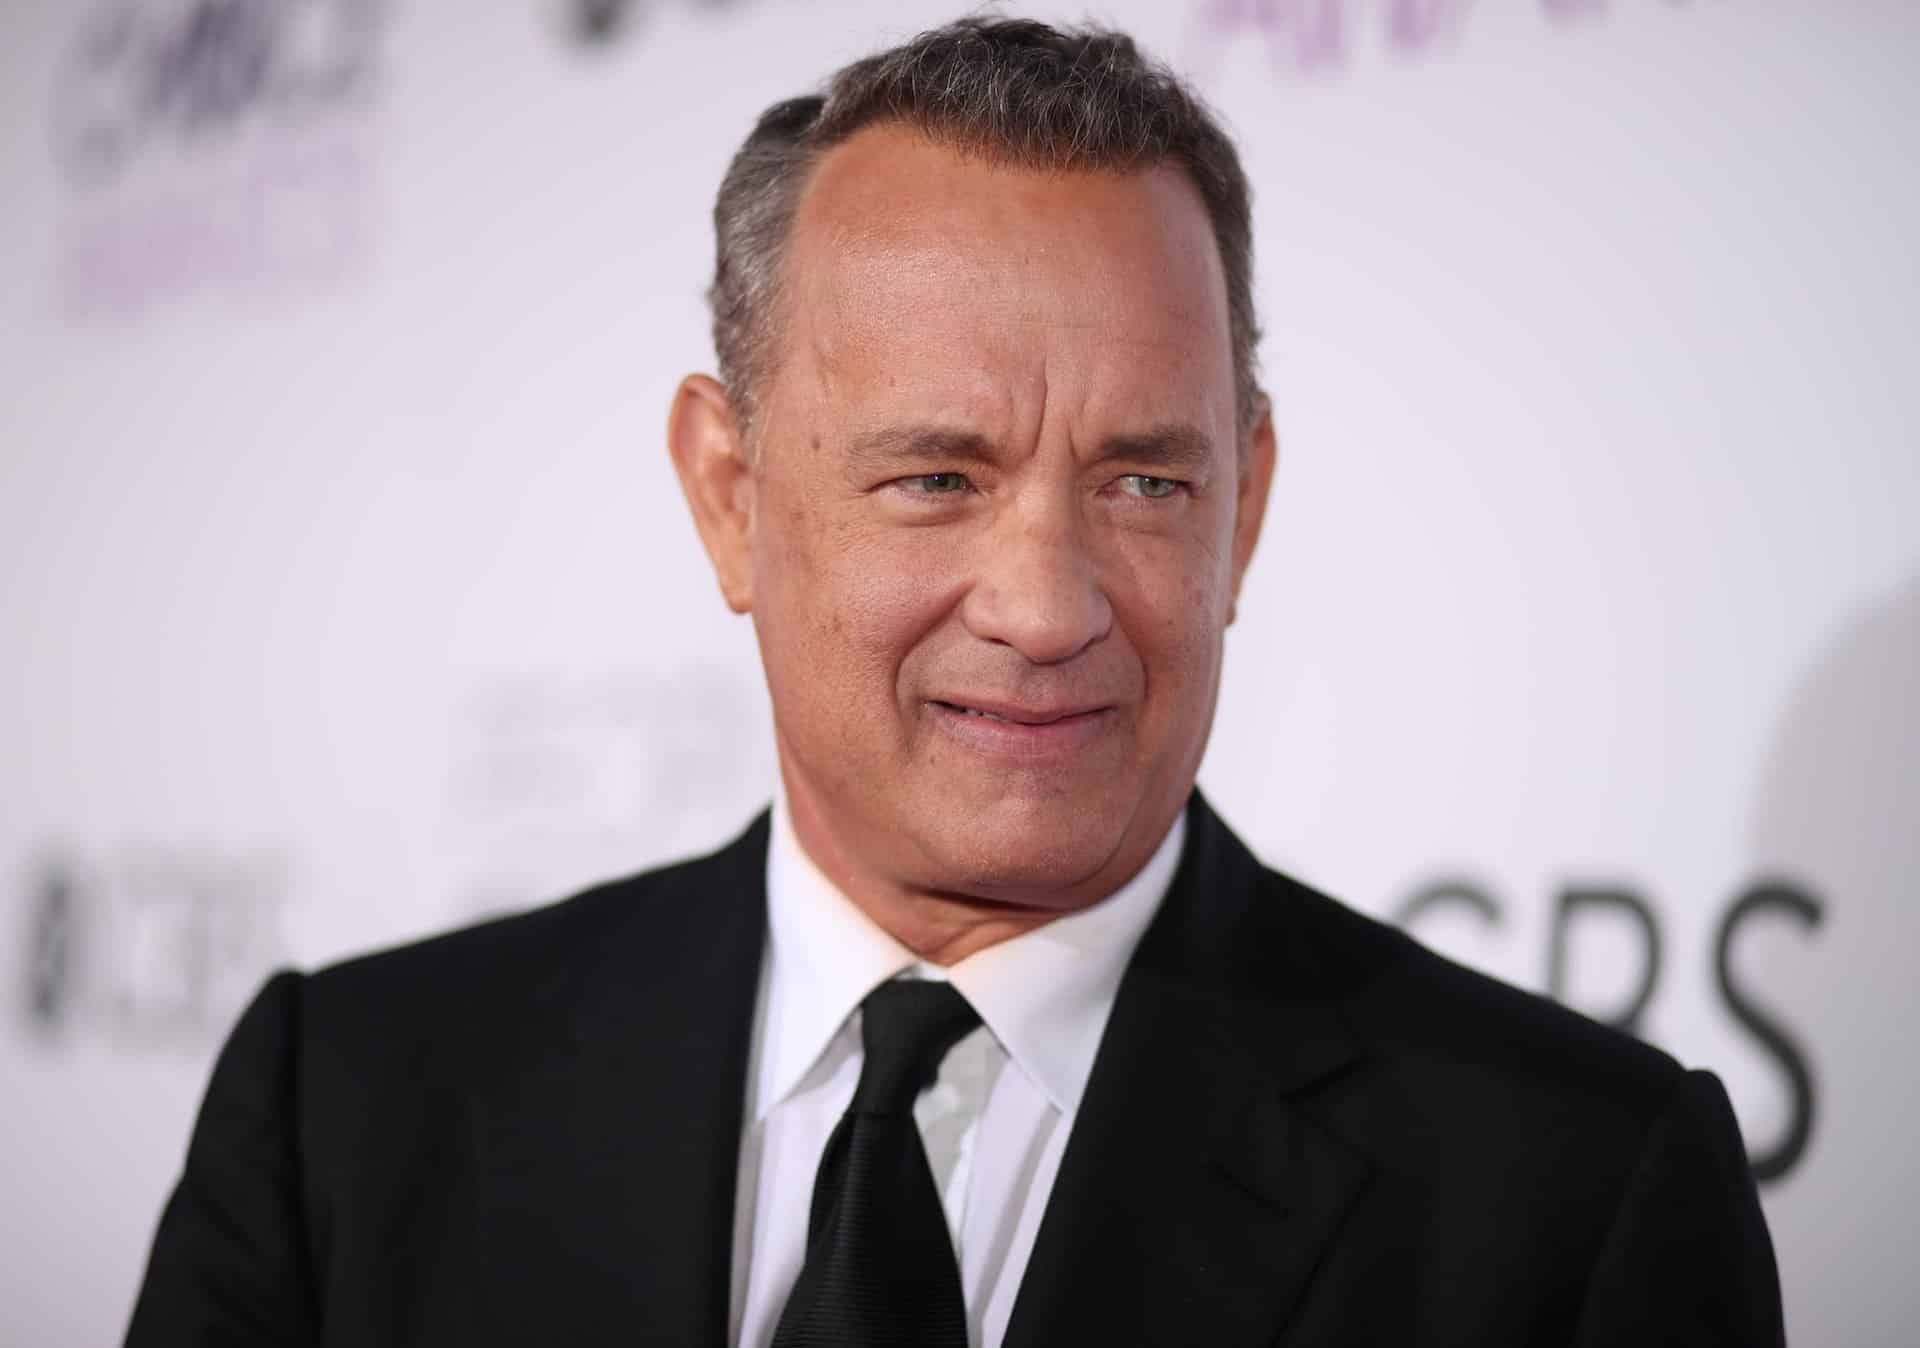 TOM HANKS PLACED UNDER HOUSE ARREST